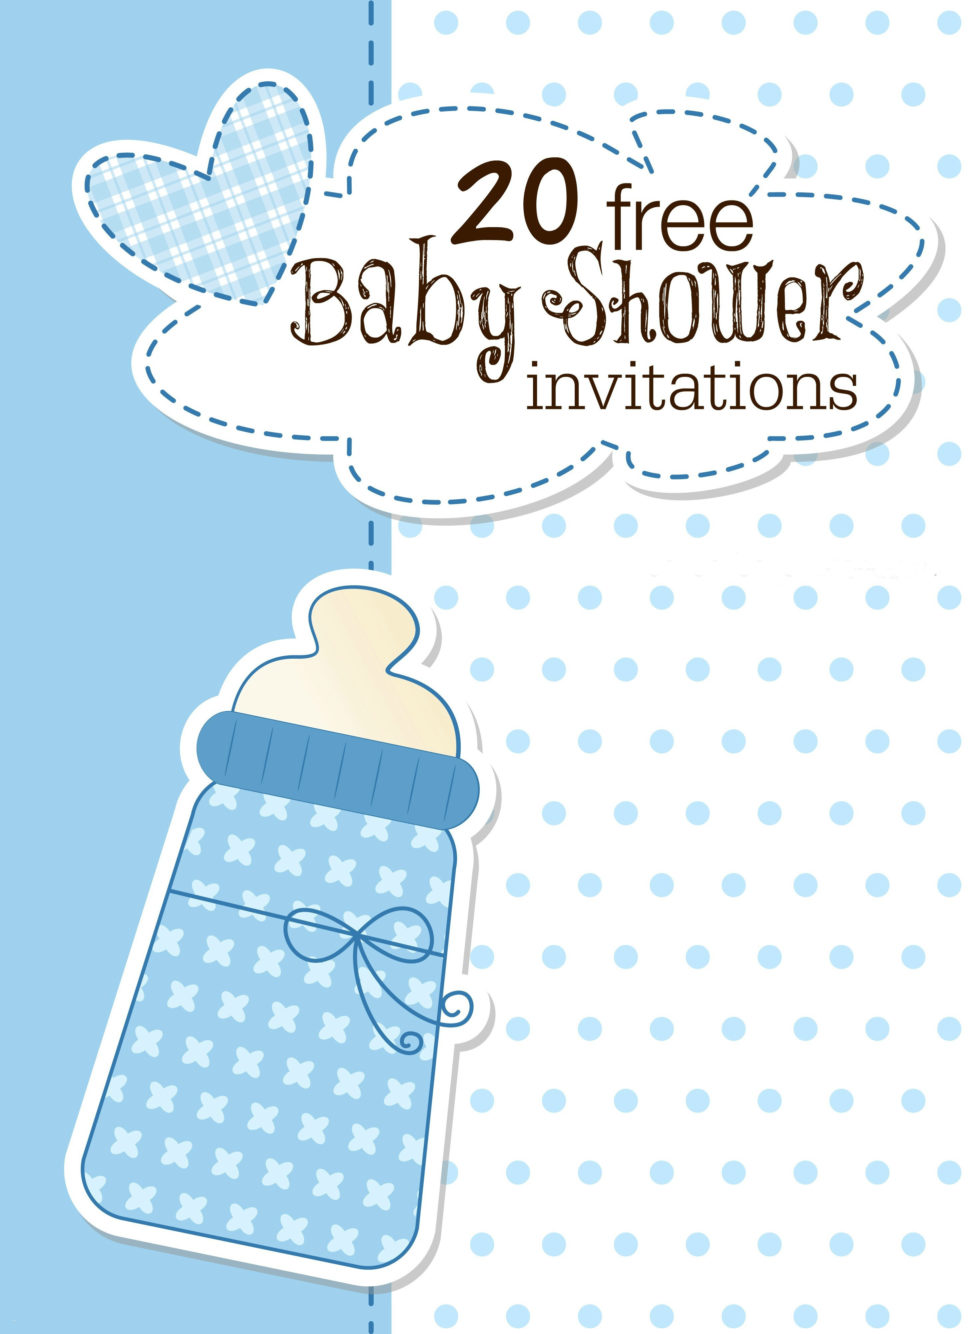 Medium Size of Baby Shower:sturdy Baby Shower Invitation Template Image Concepts Baby Shower Invitation Template Digital Baby Shower Invitation Templates Valid Digital Baby Shower Invitation Templates Lovely Baby Shower Postcard